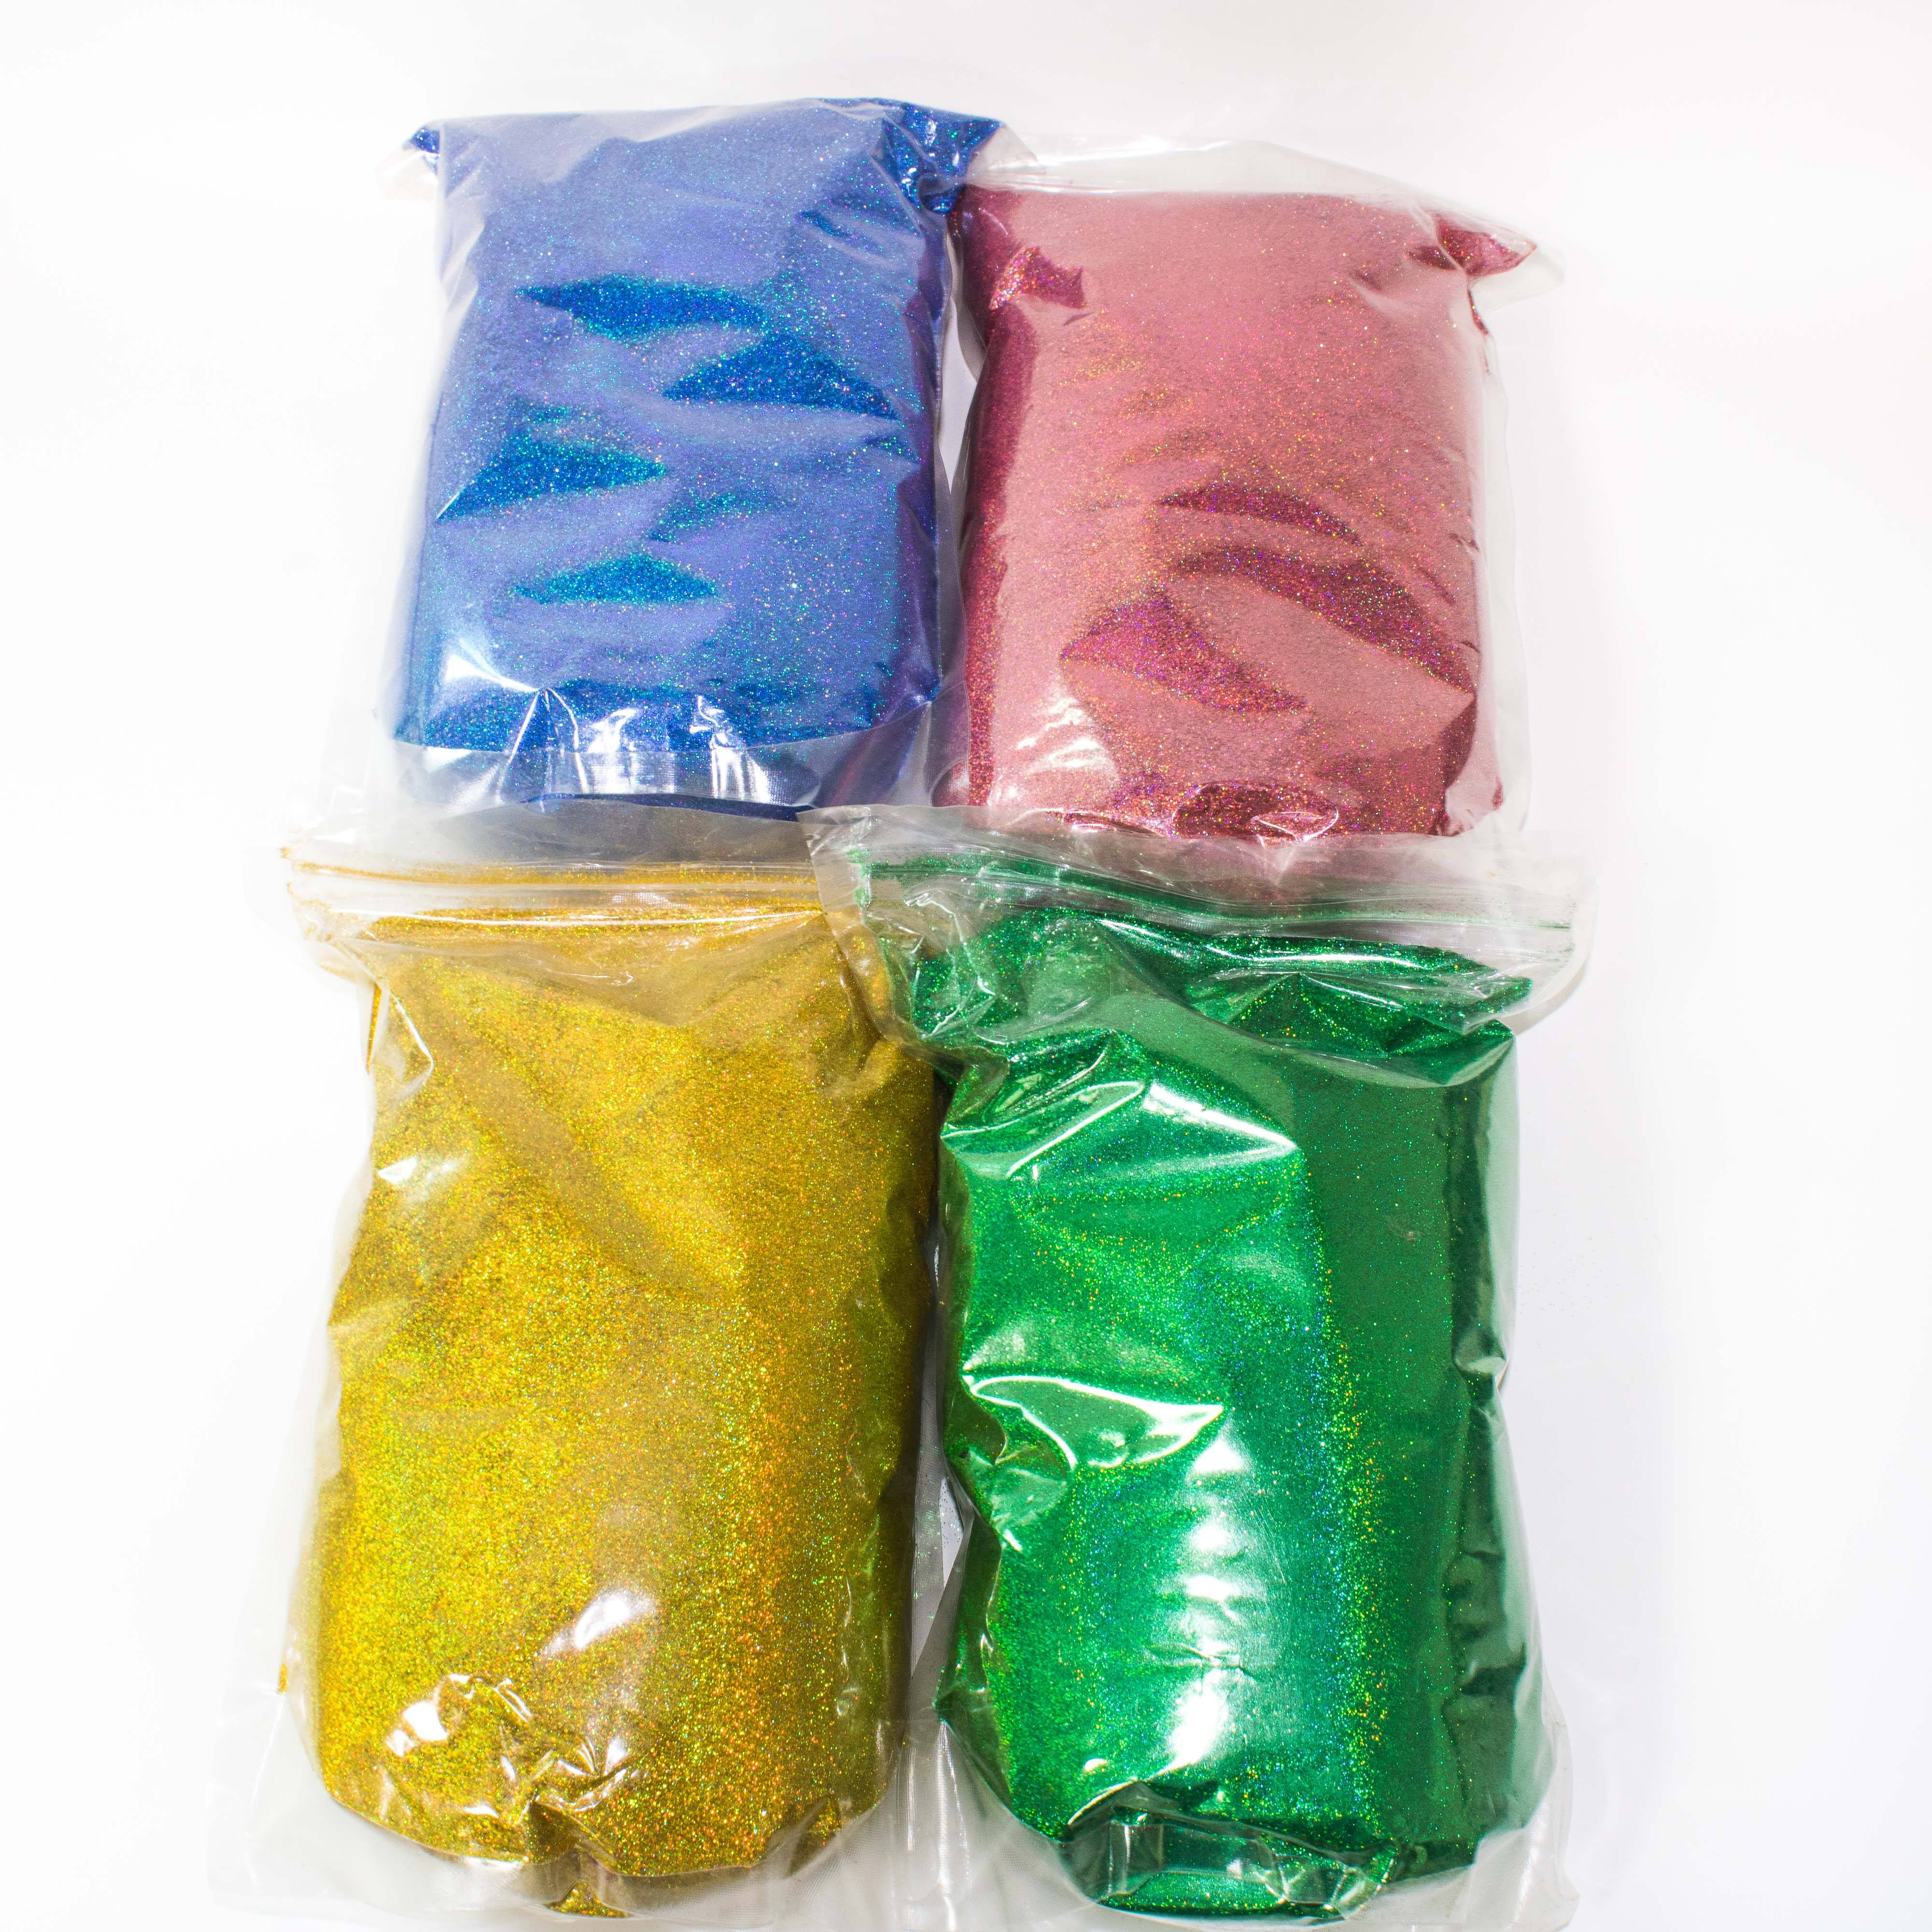 Hot Selling Fine Bulk Glitter Powder For Crafts Holographics Nail Powder Glitter Sequins Pigments Art Flakes Decoration DIY